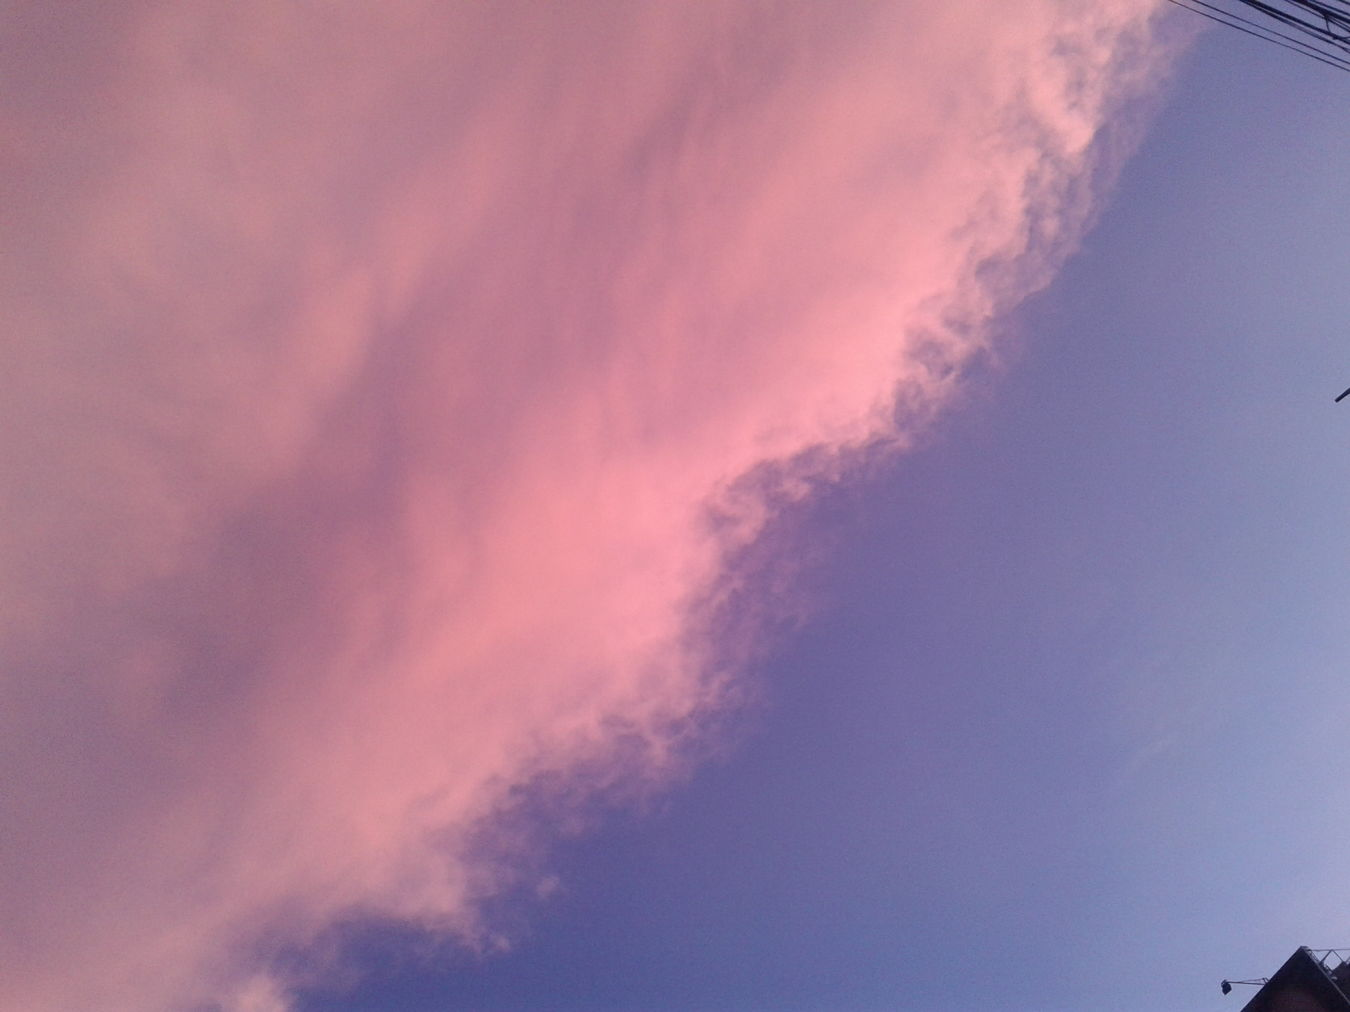 Afternoonsky Sky Clouds Sky And Clouds Coloredsky Coloredclouds Pinkandblue Pink Blue Cottoncandyclouds